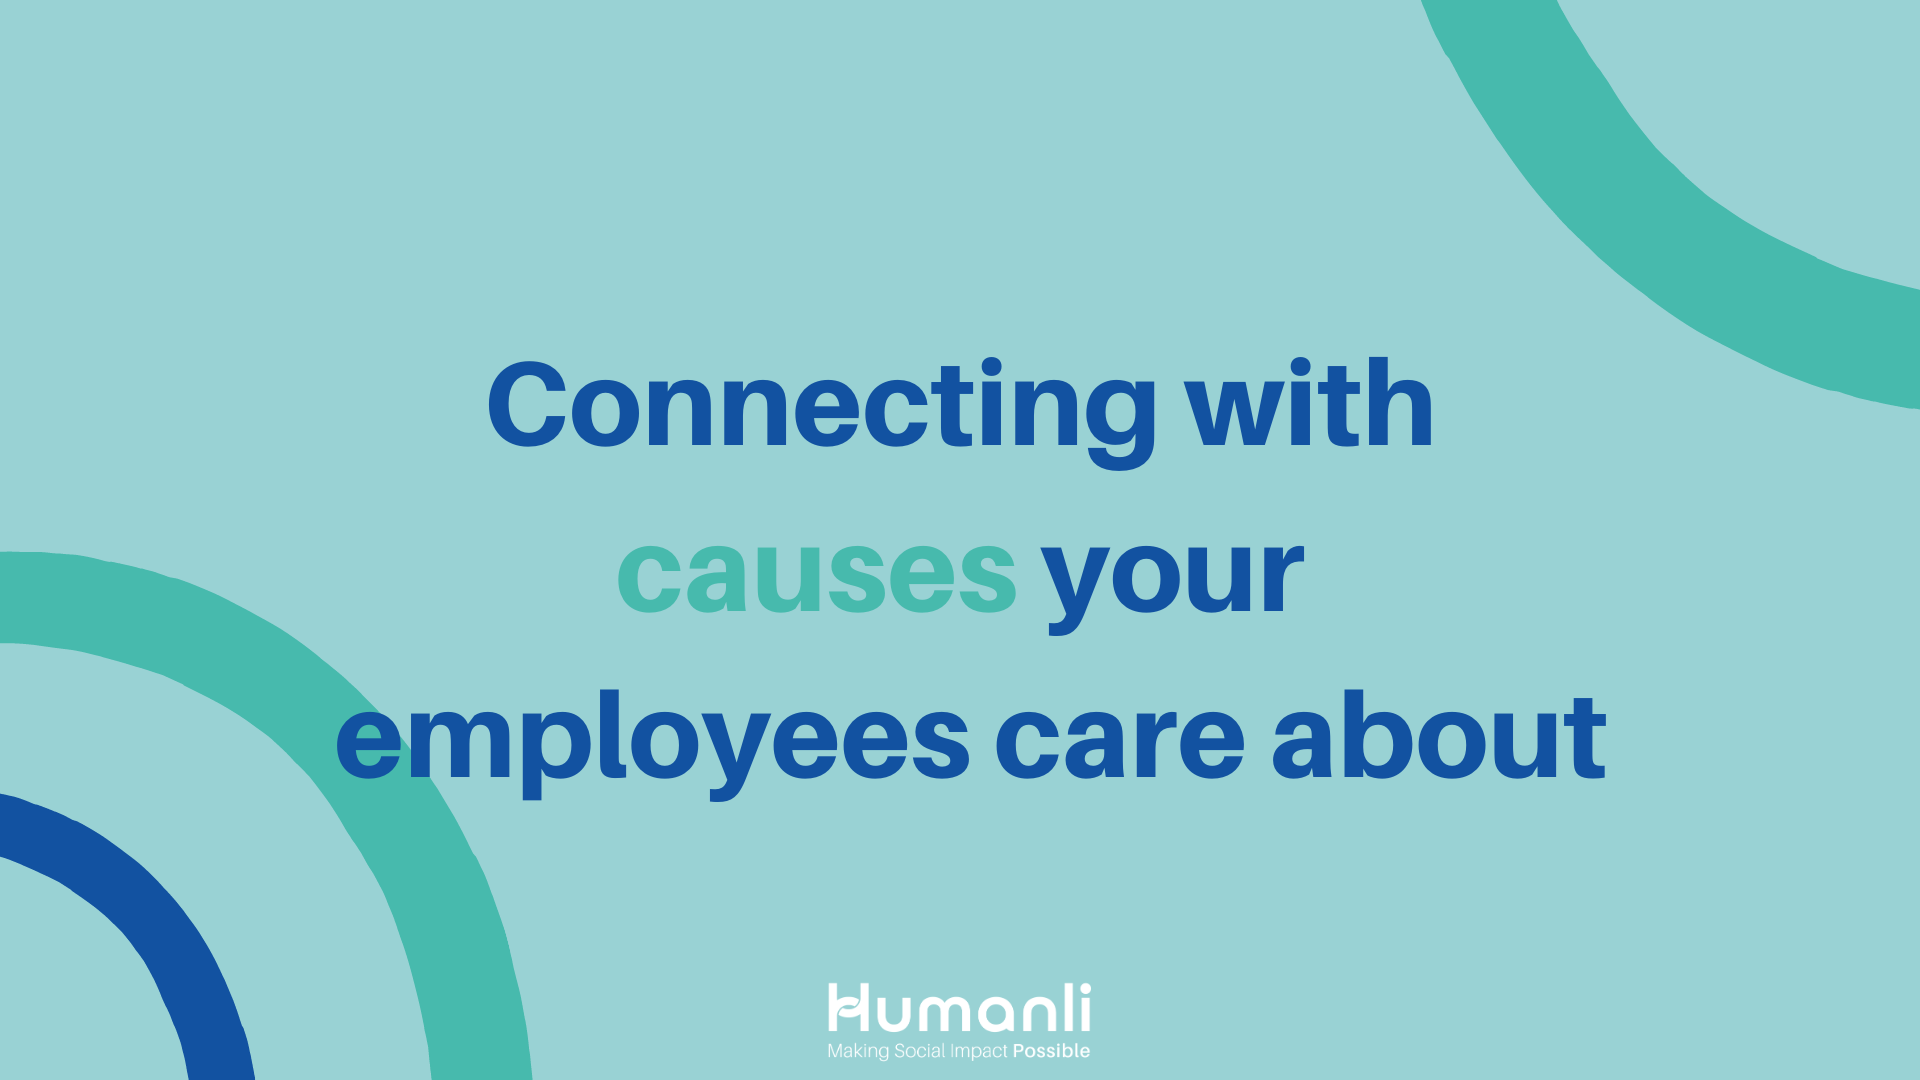 Connecting with causes your employees care about